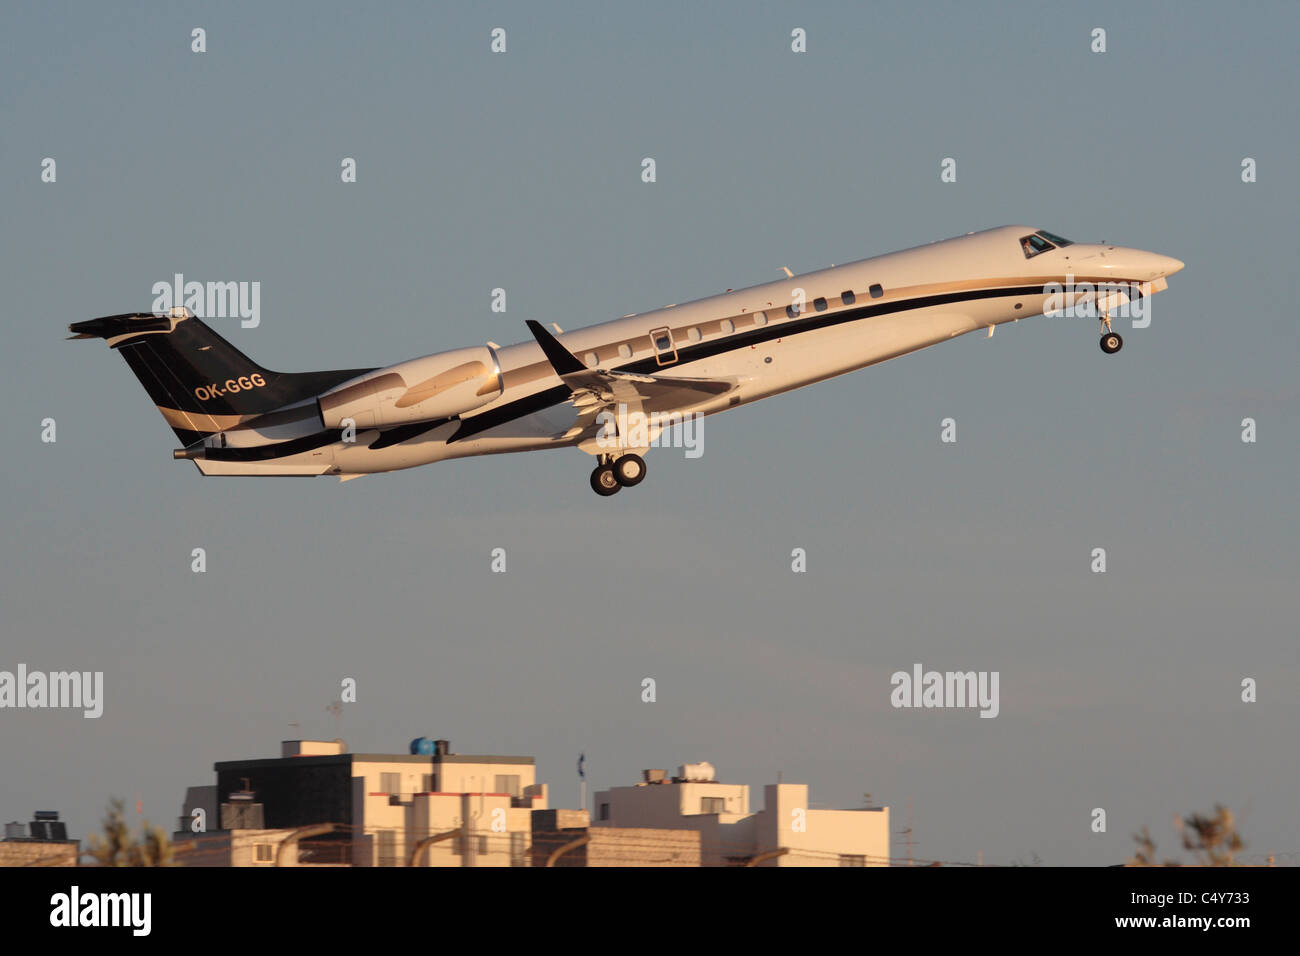 Embraer Legacy 600 business jet taking off at sunset - Stock Image